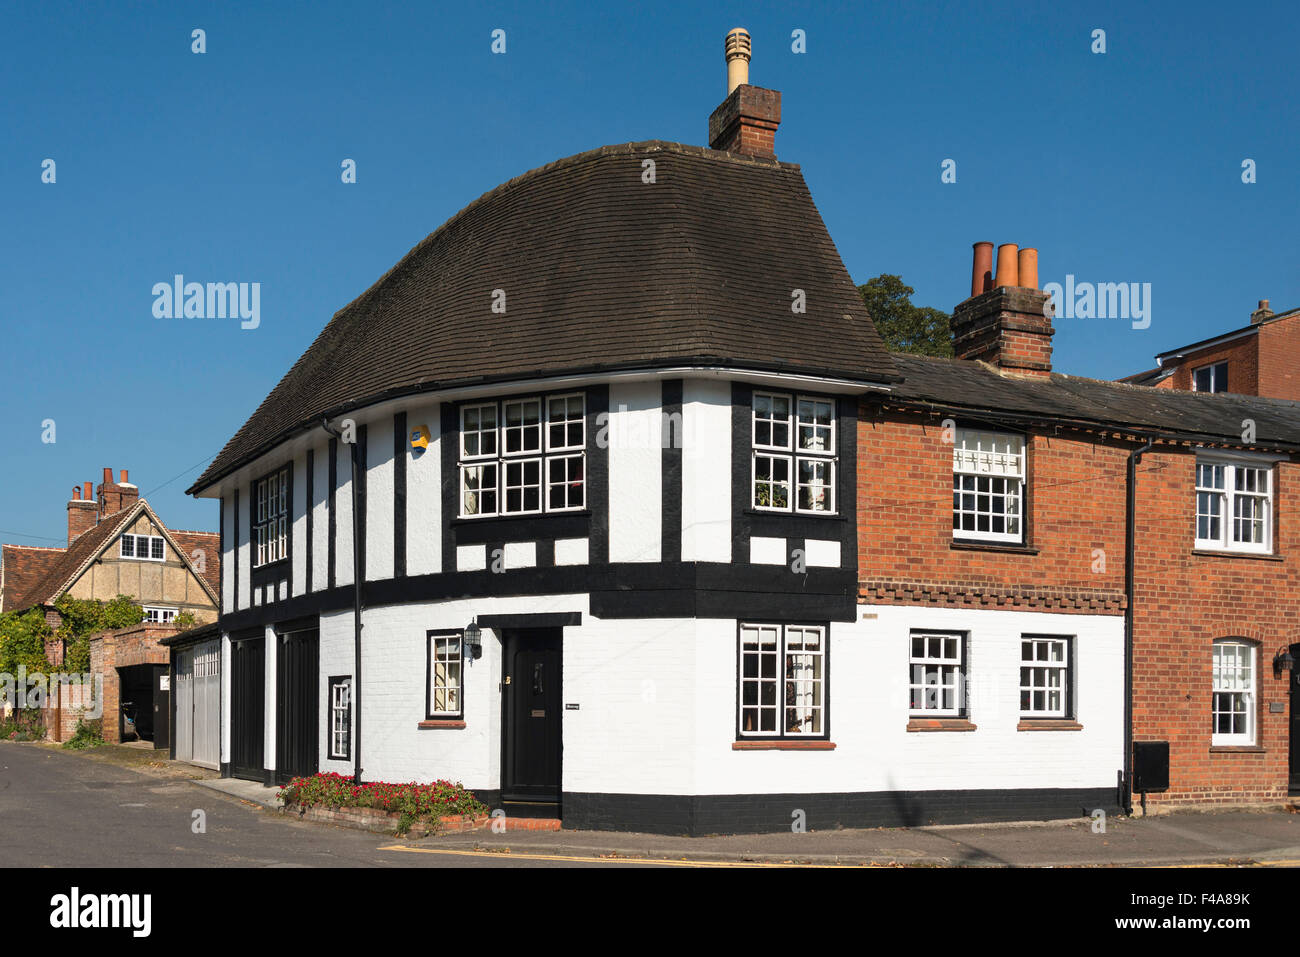 Period corner house, School Lane, Wargrave, Berkshire, England, United KIngdom - Stock Image